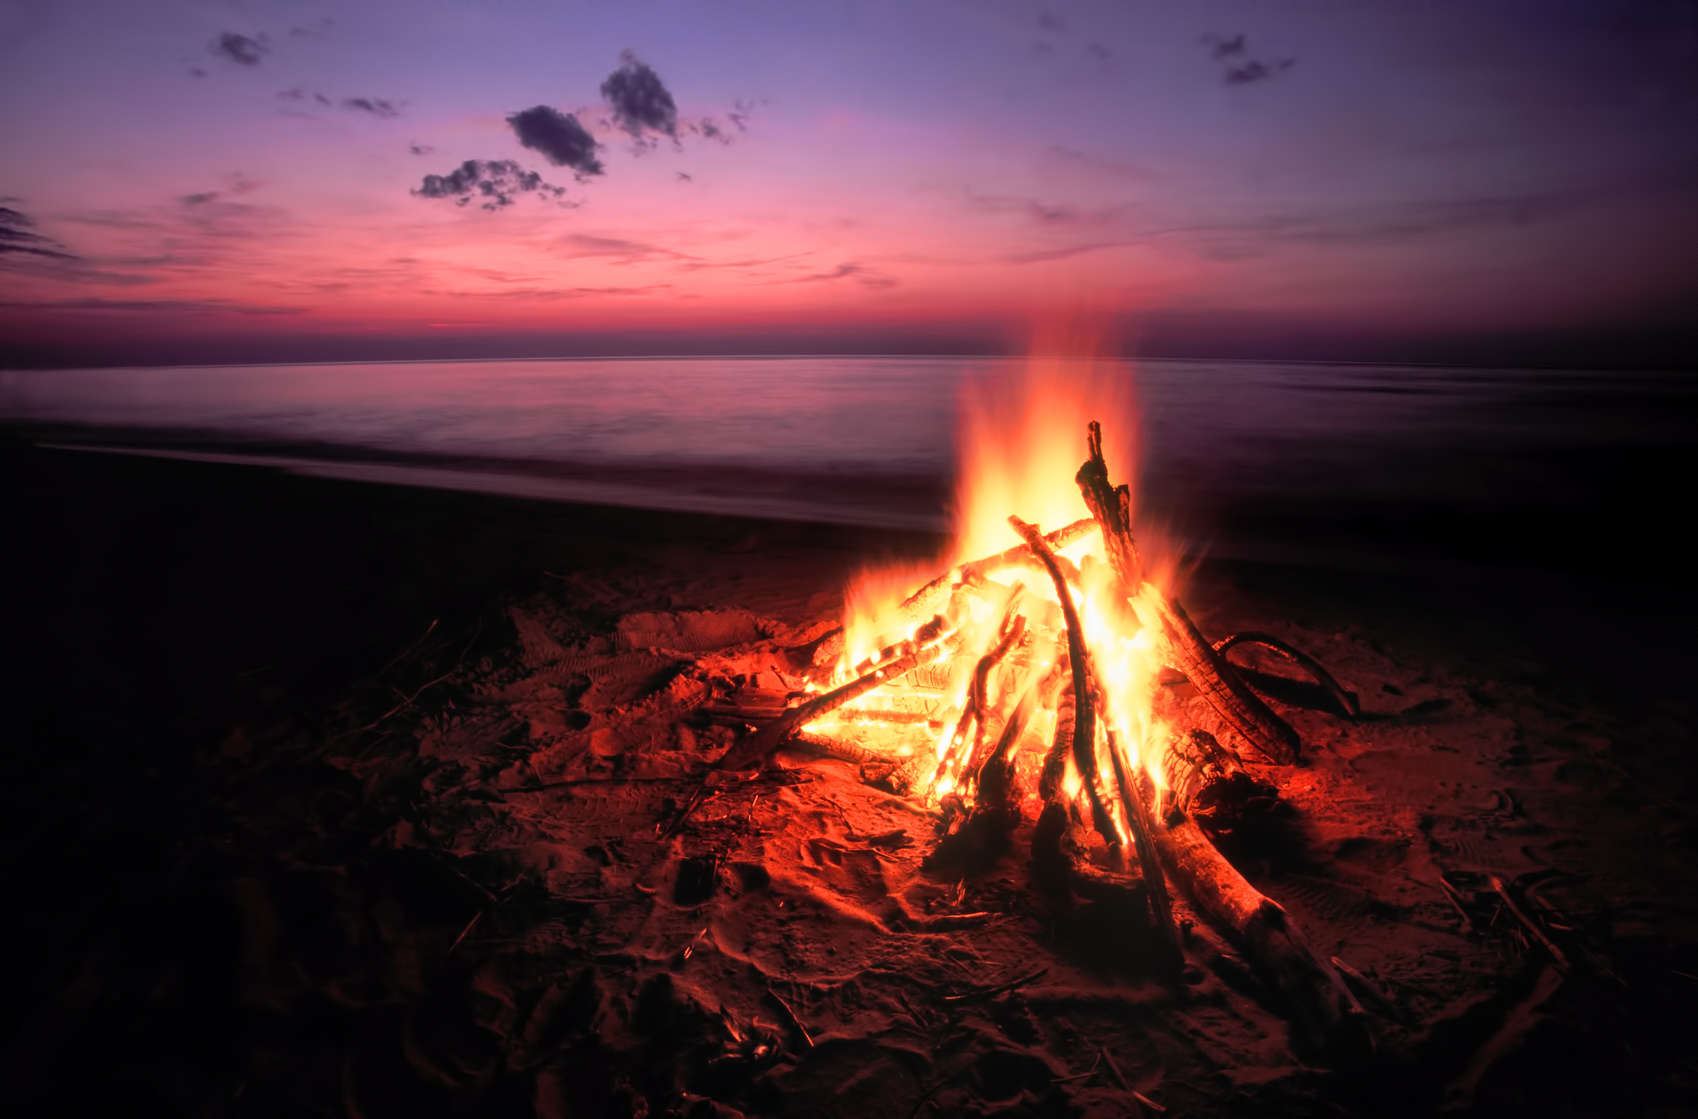 Blazing campfire at sunset along the beautiful beach of Lake Superior in northern Michigan.